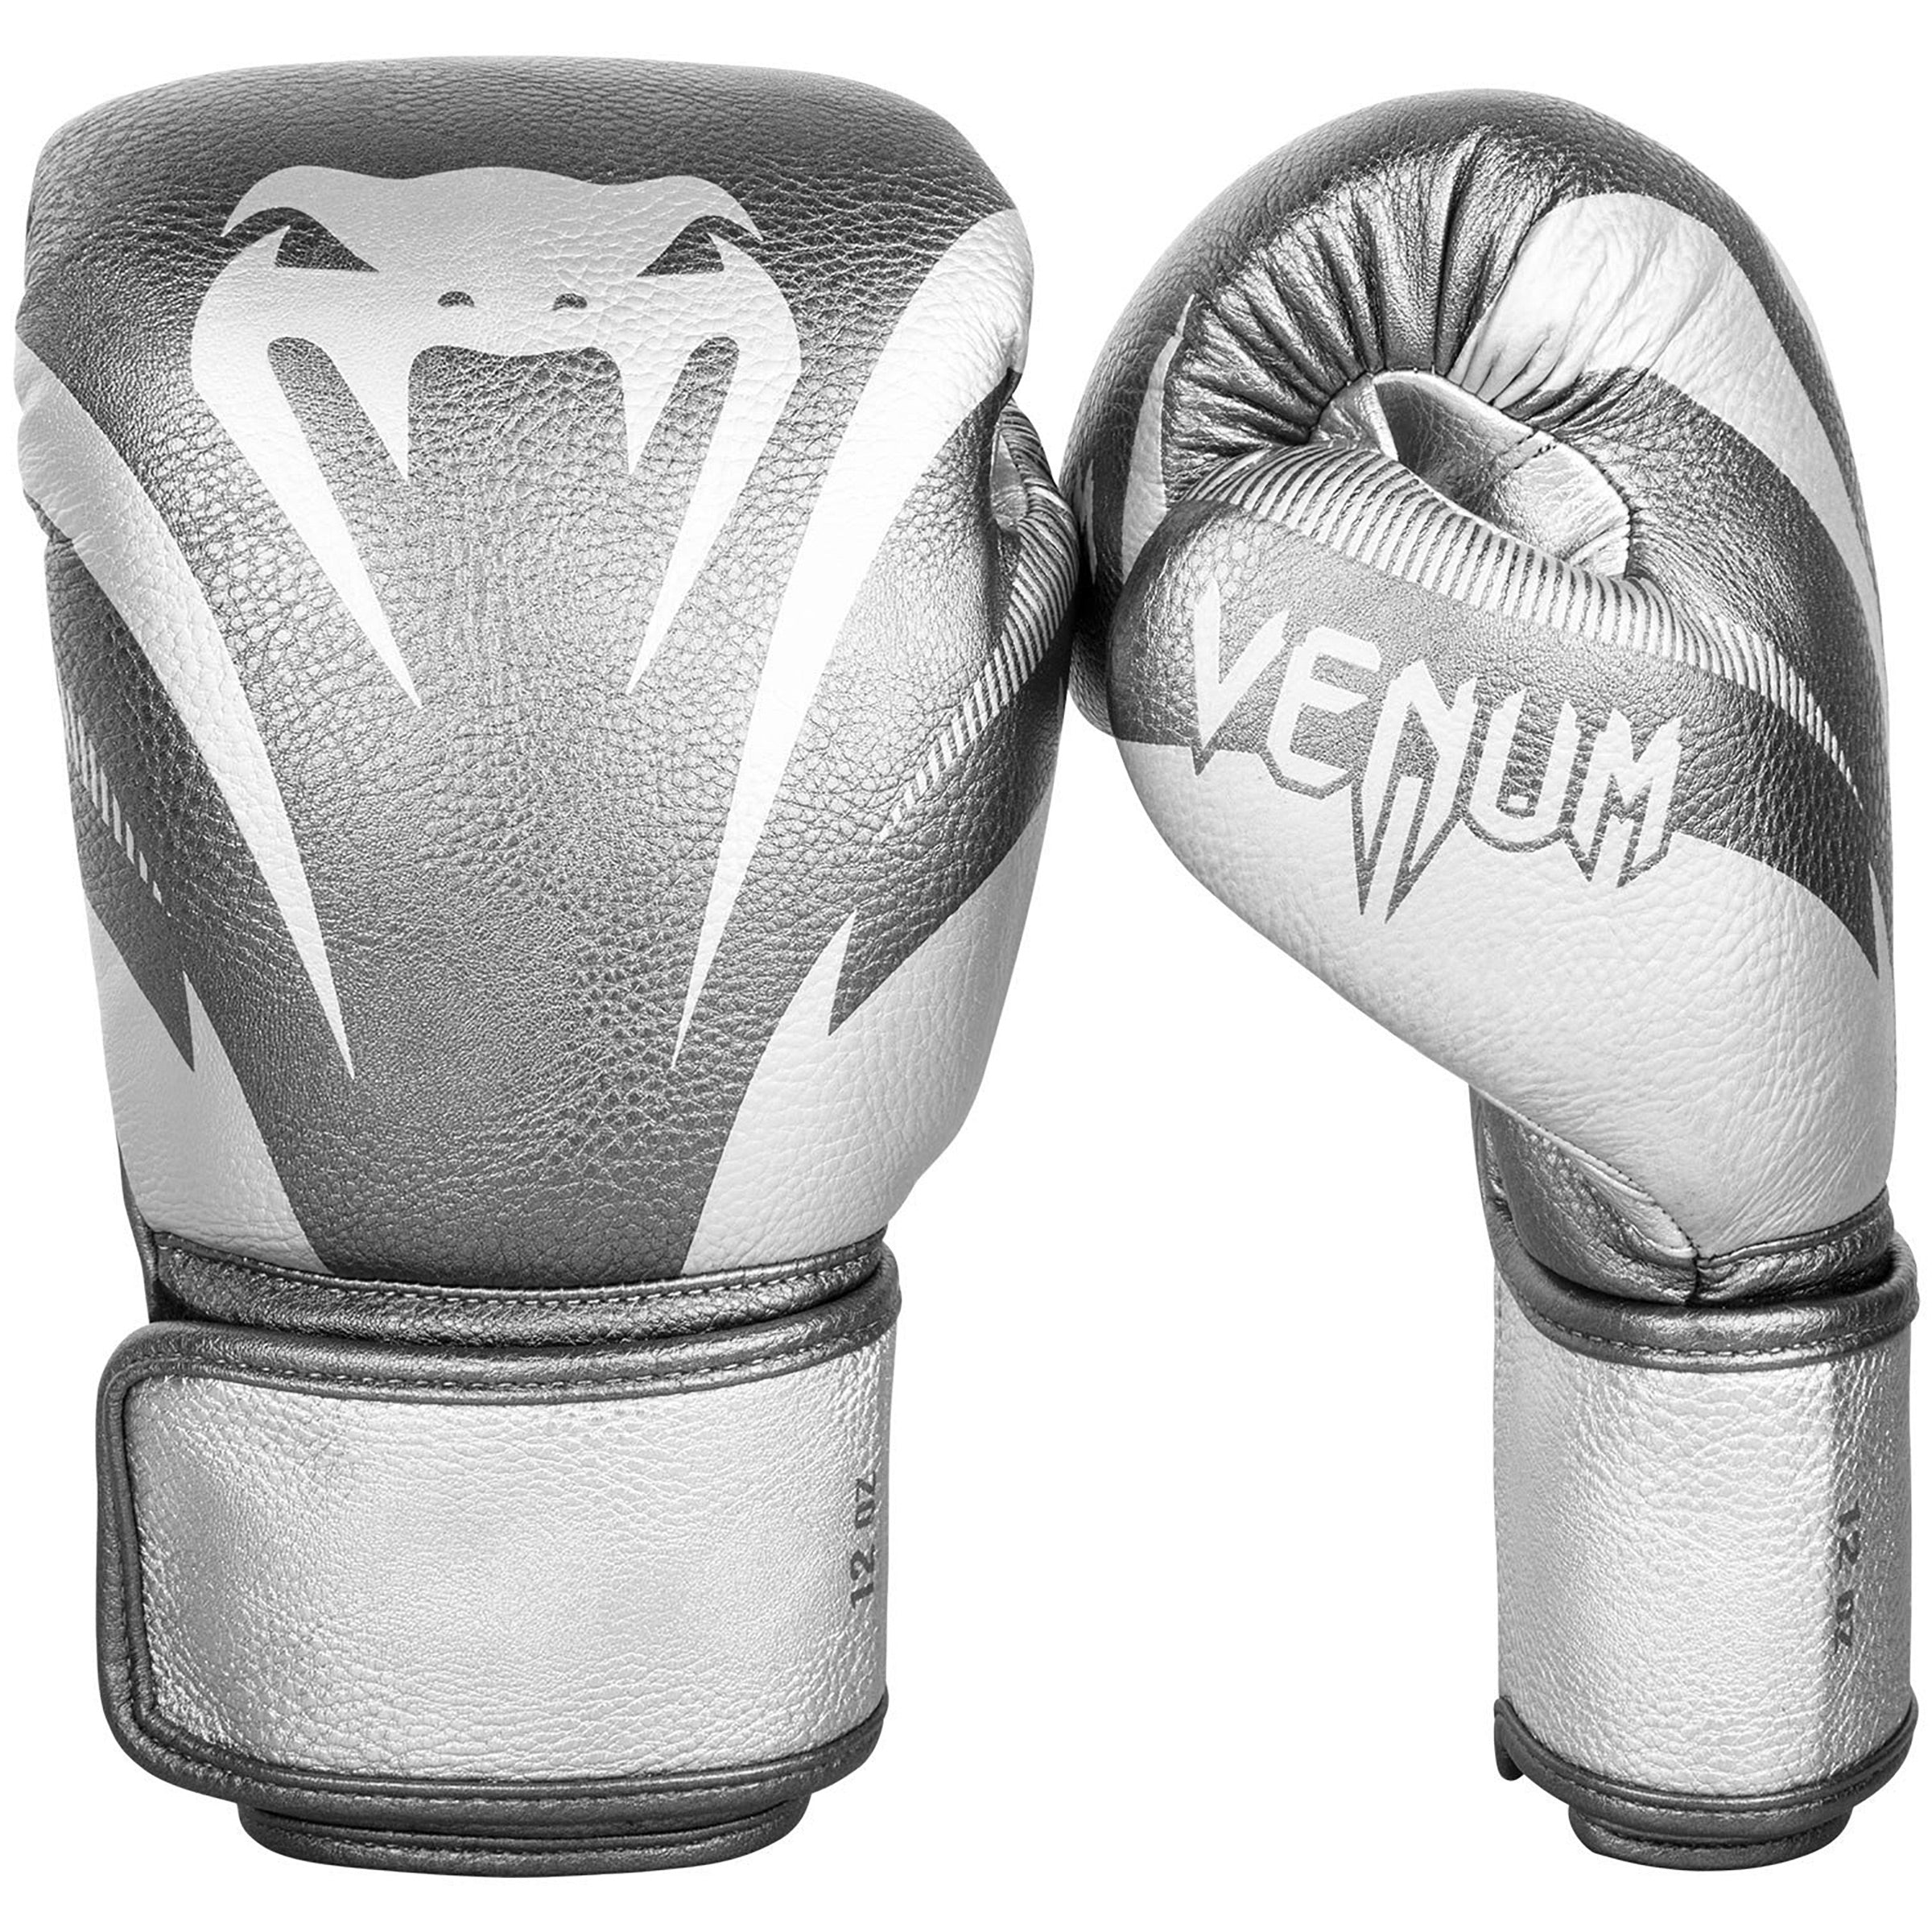 Image of Venum Impact Boxing Gloves